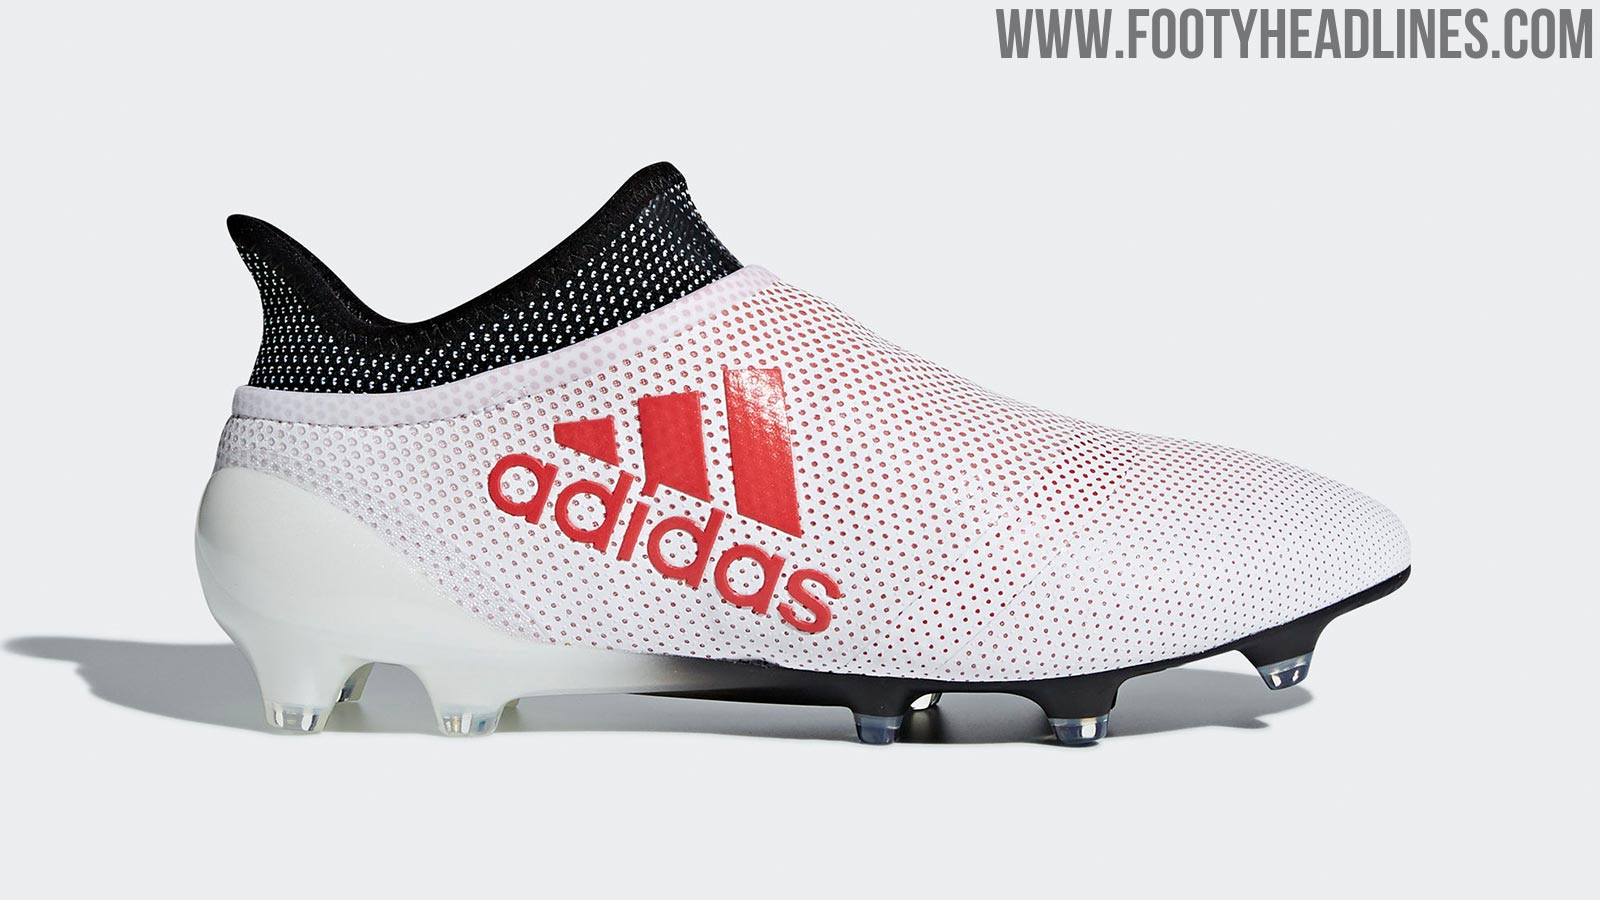 Adidas Paint Shoes